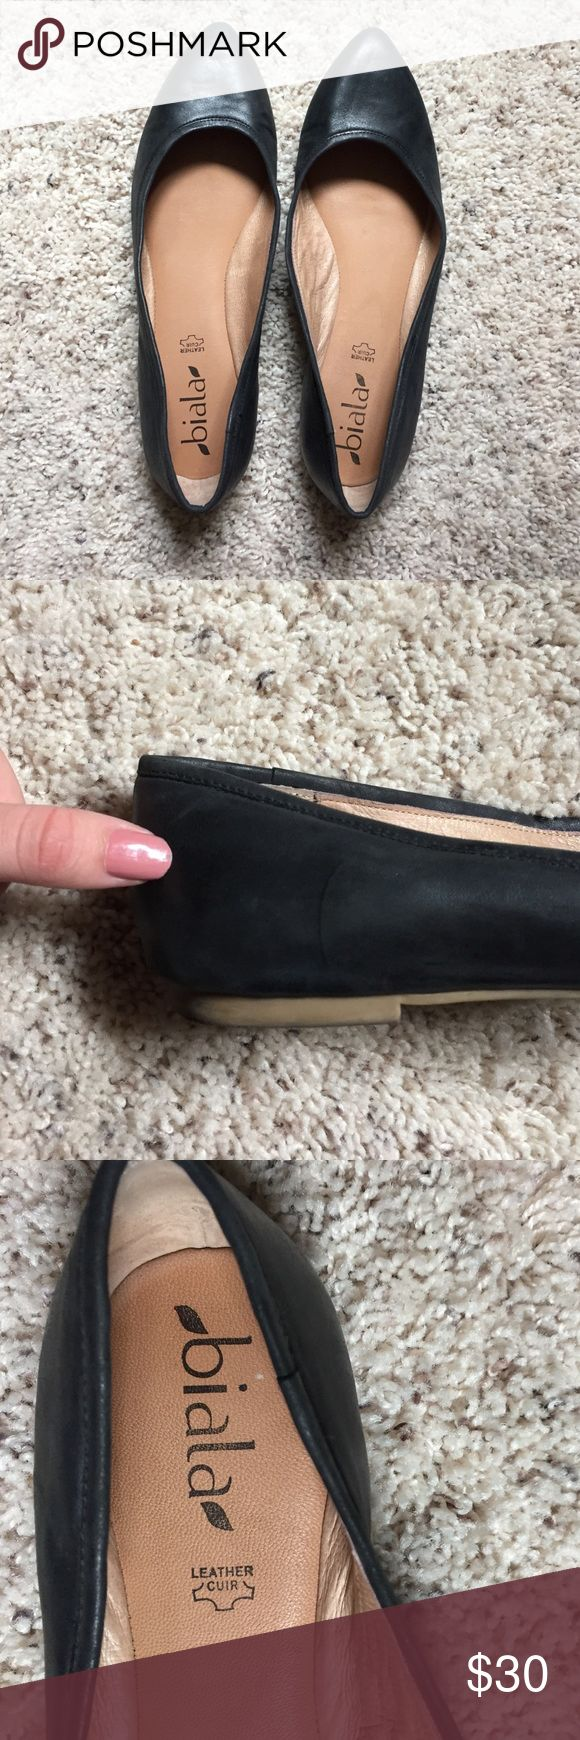 Black Leather Flats Slight Heal Black Leather Flats Slight Heal. Worn for 3 interviews. Got the job so these are lucky too! A comfortable pair of shoes. used slightly. Steve Madden Shoes Flats & Loafers